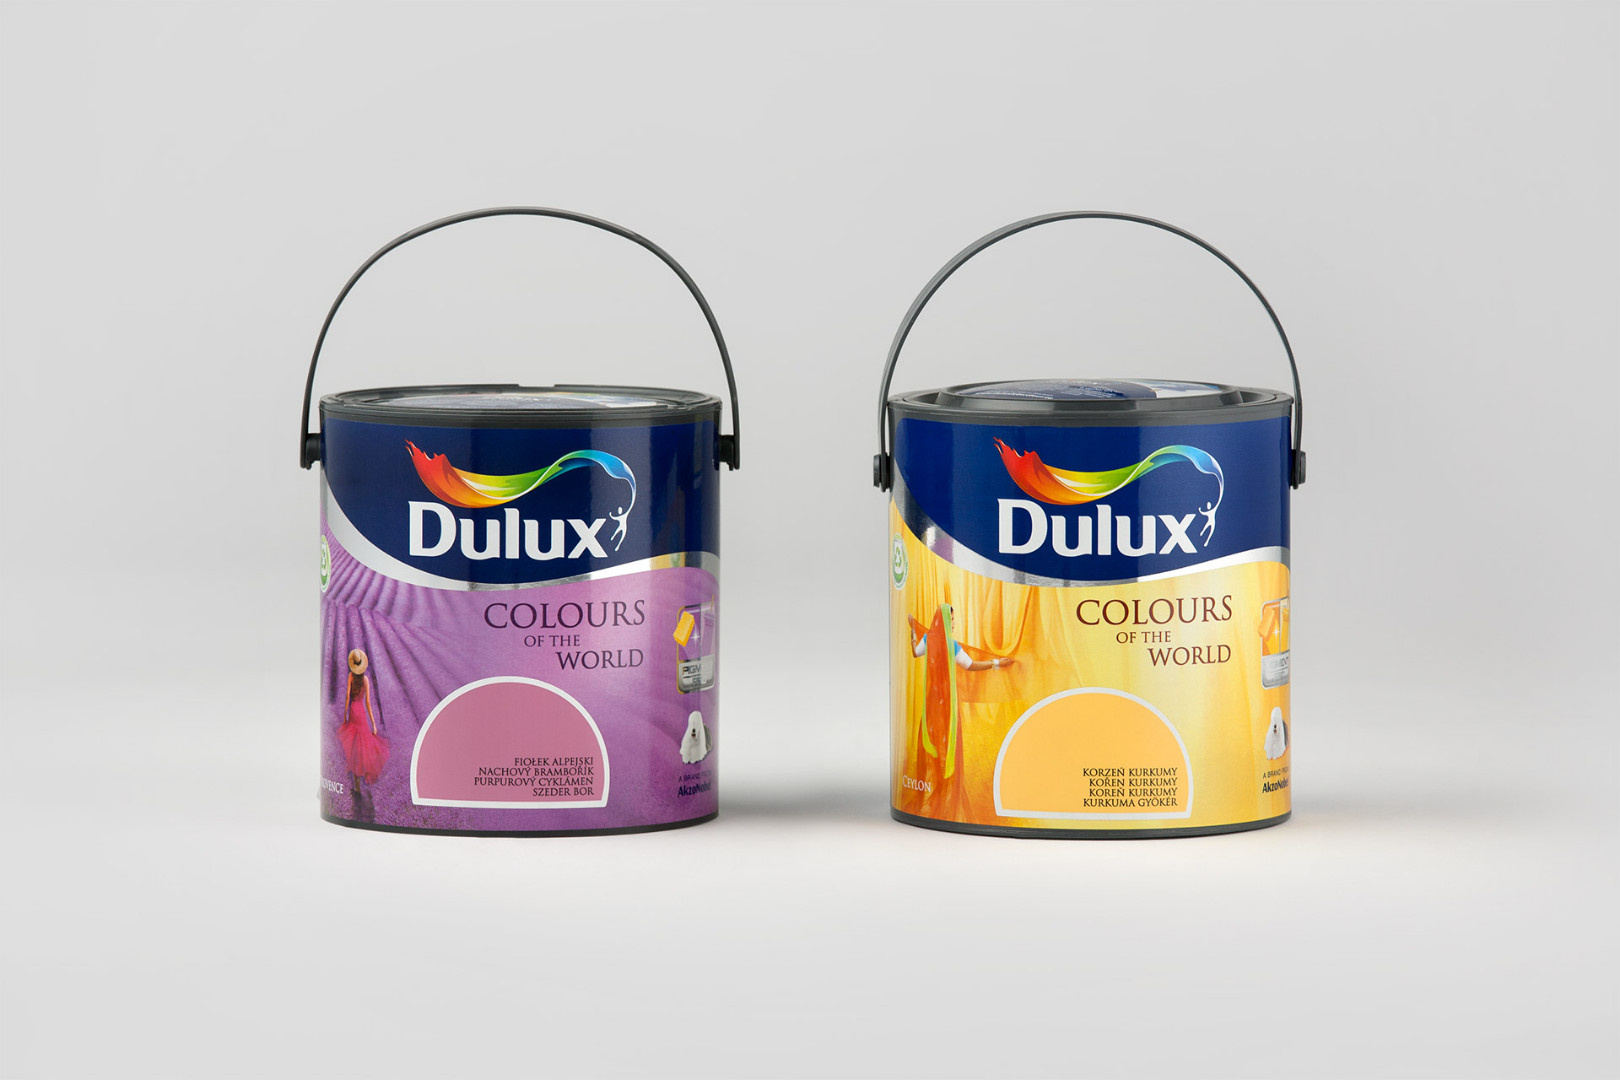 Picture no 3 Dulux